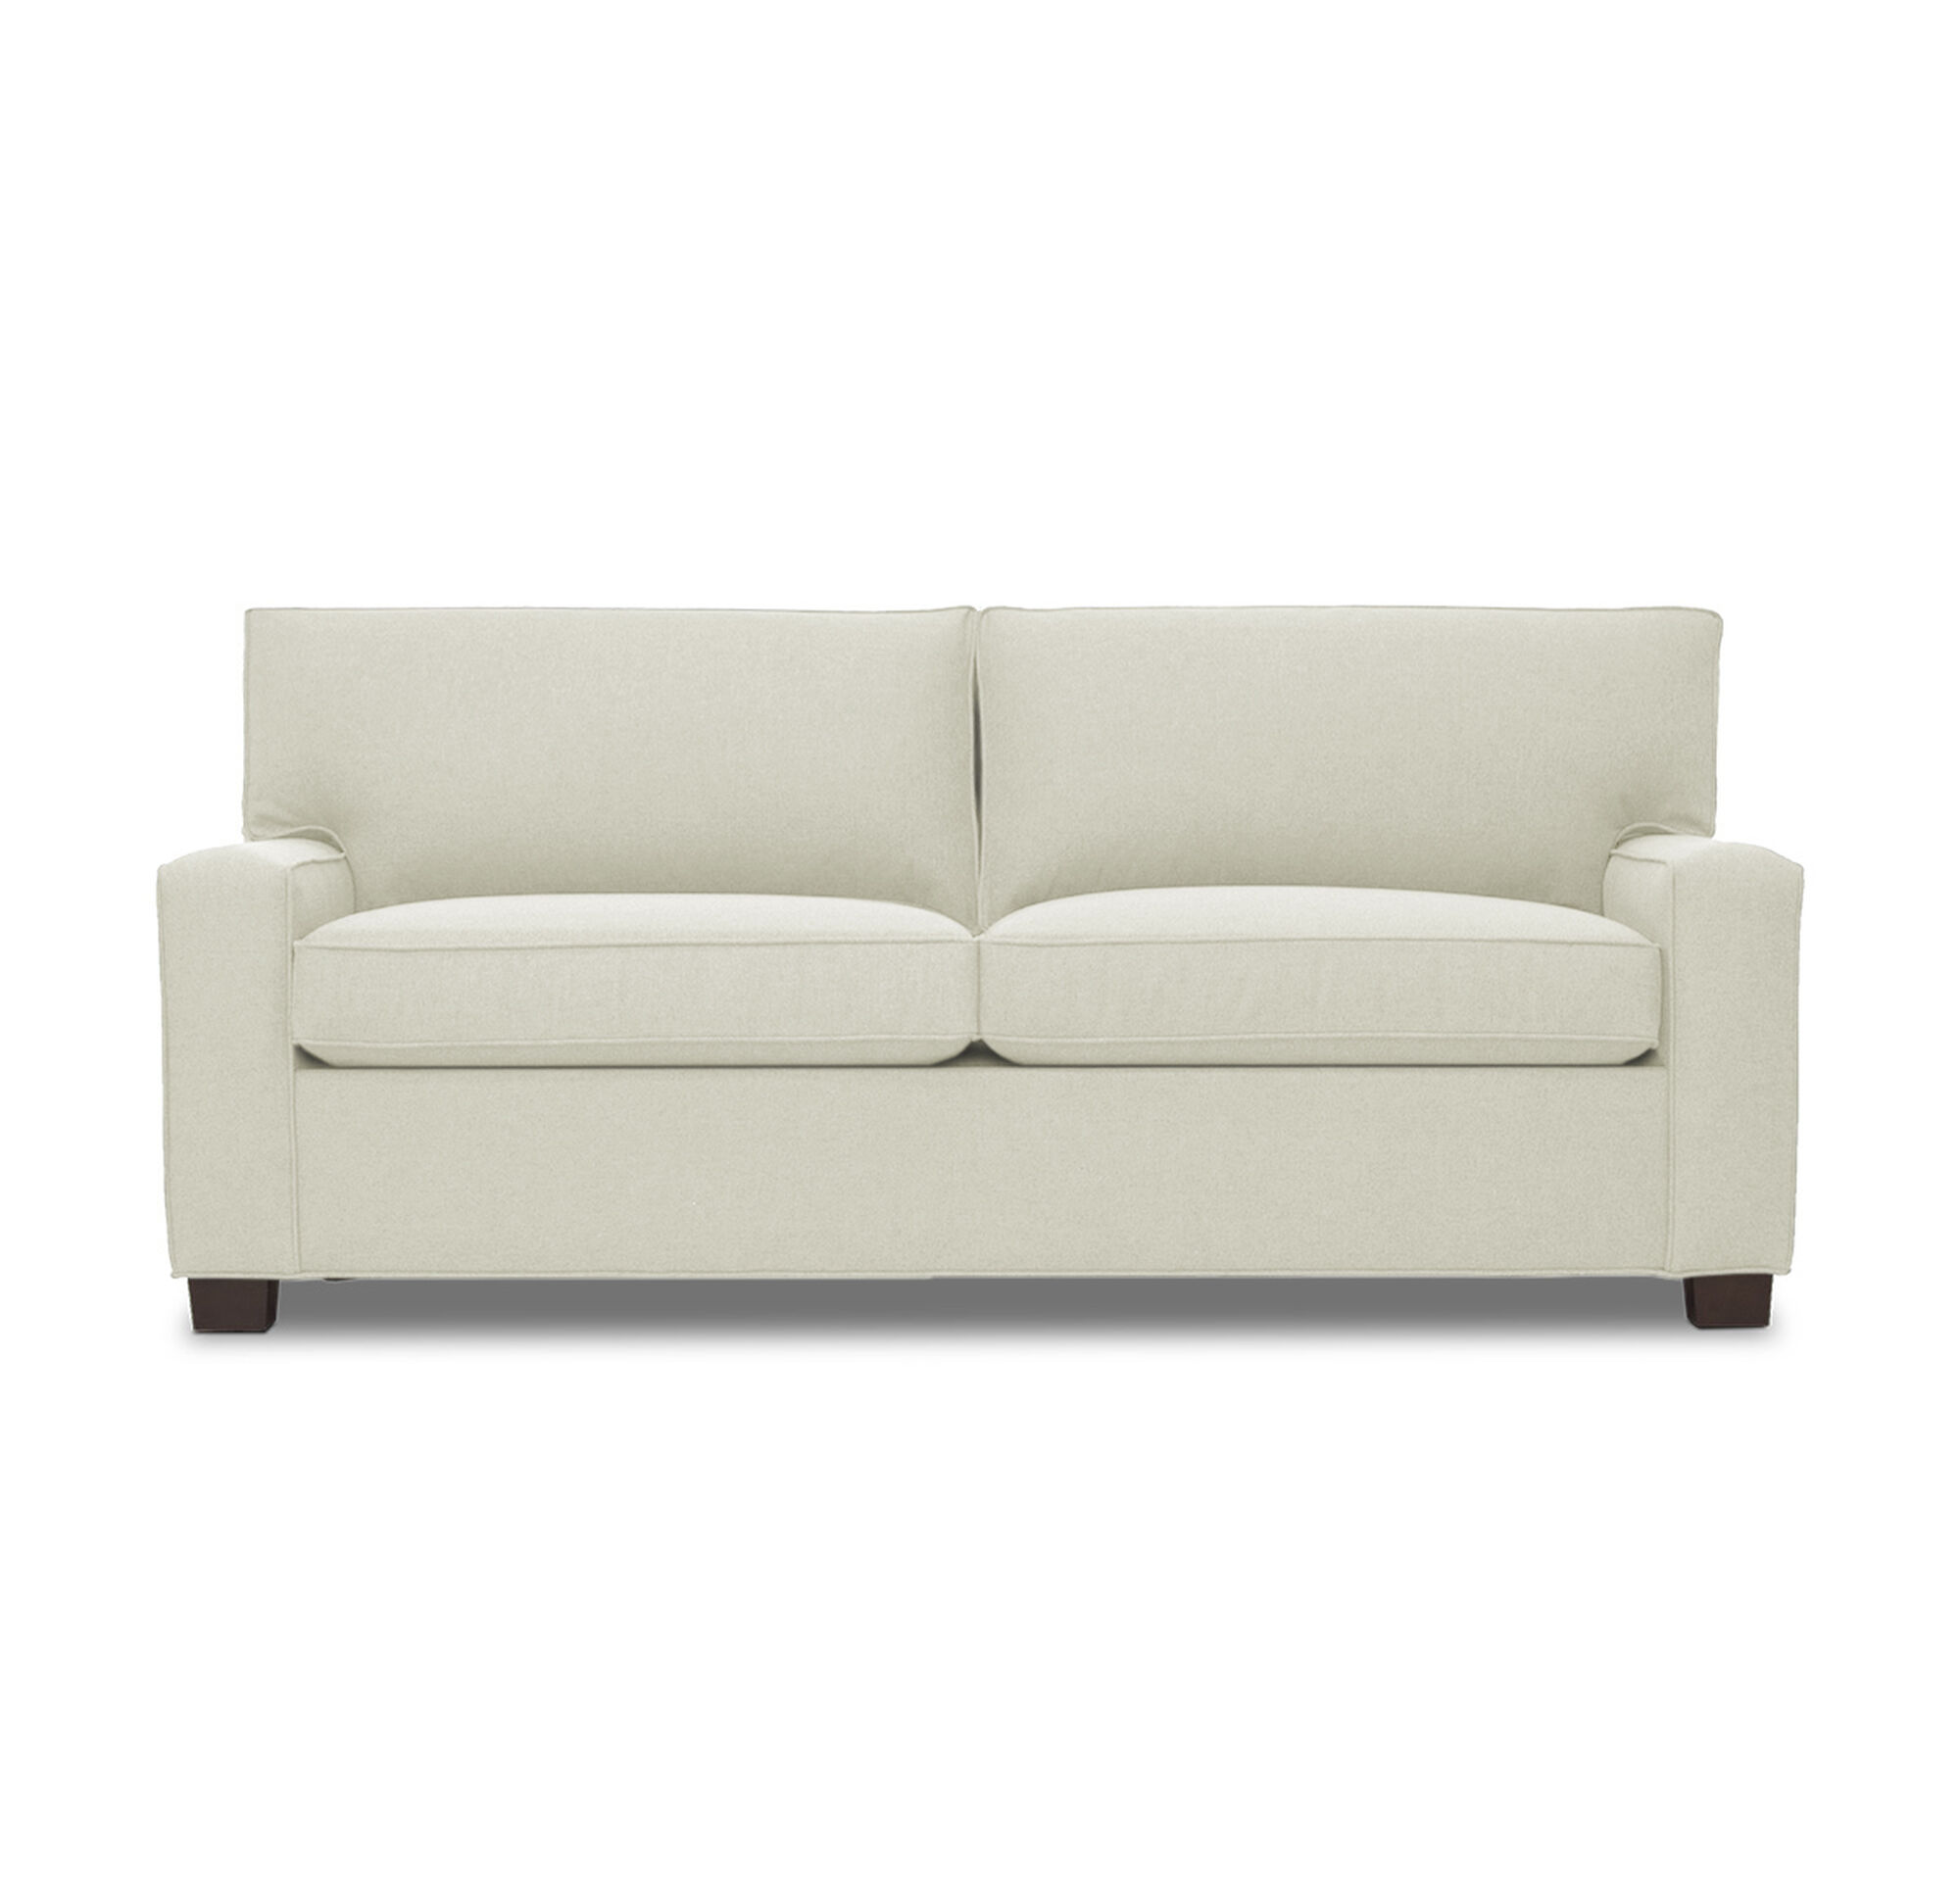 ALEX LUXE QUEEN SLEEPER SOFA